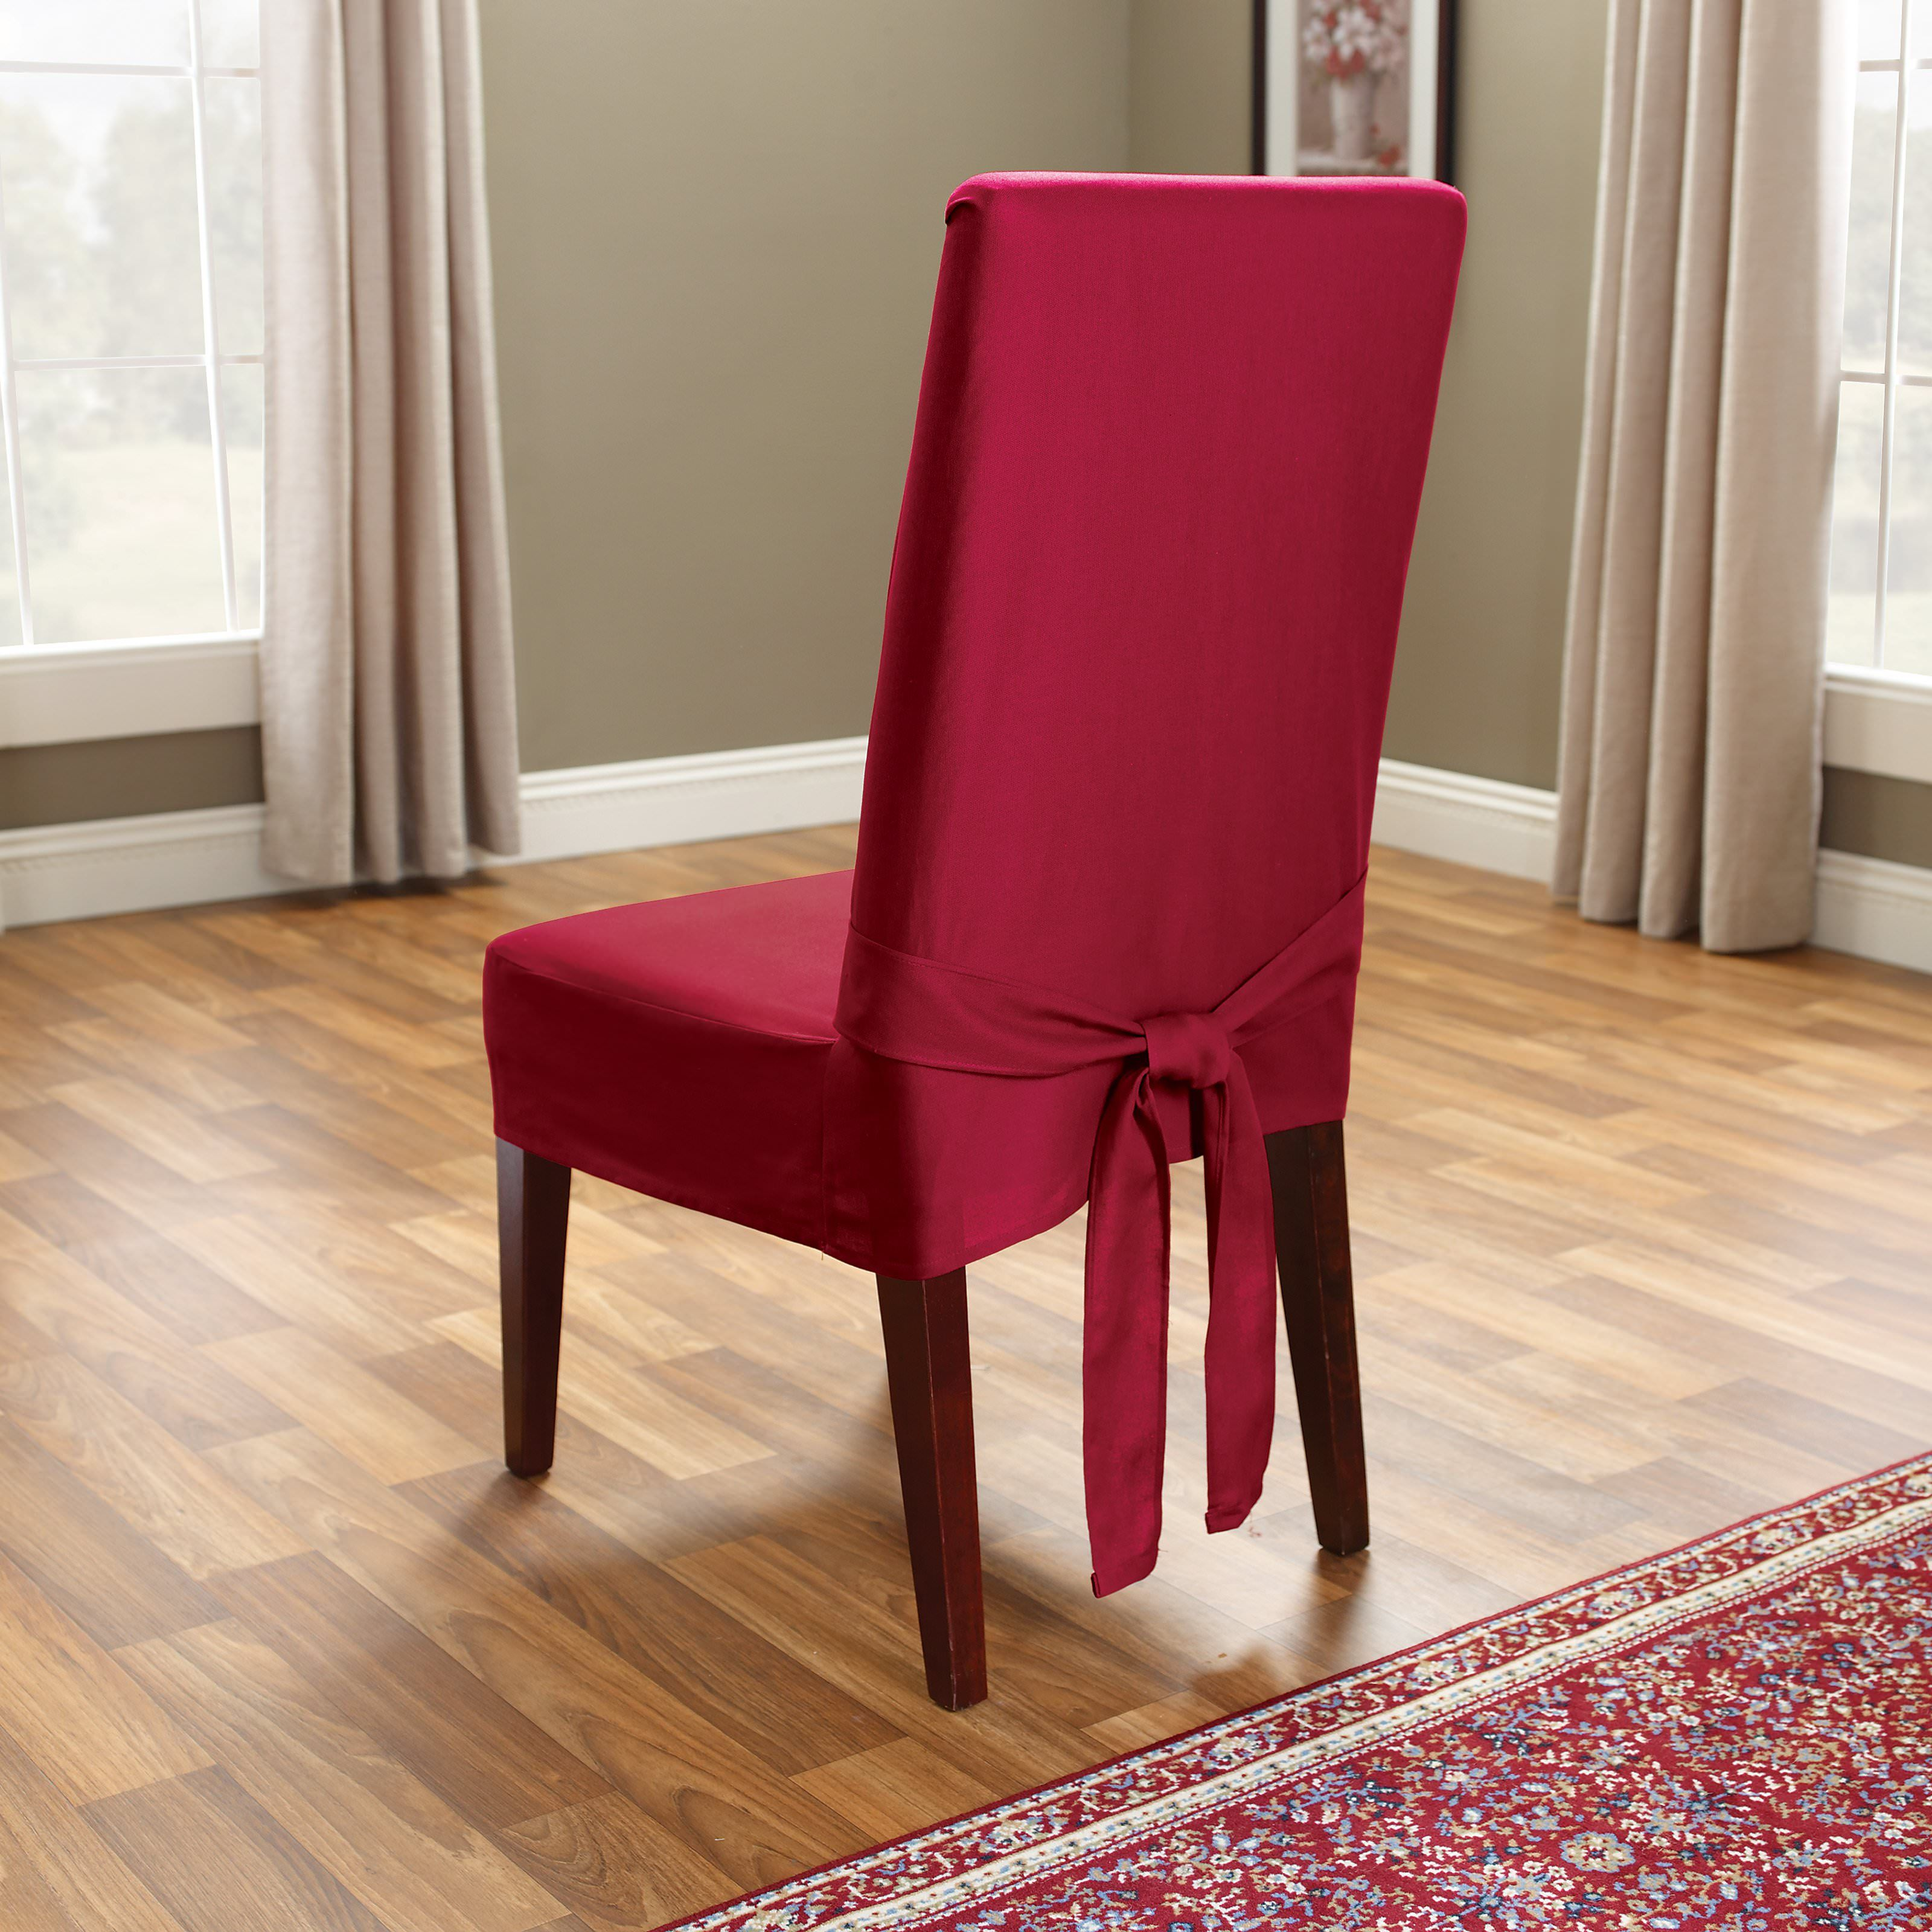 Romantic Red Dining Room Chair Stretch Covers For Interior Design Enchanting Stretch Covers For Dining Room Chairs Review